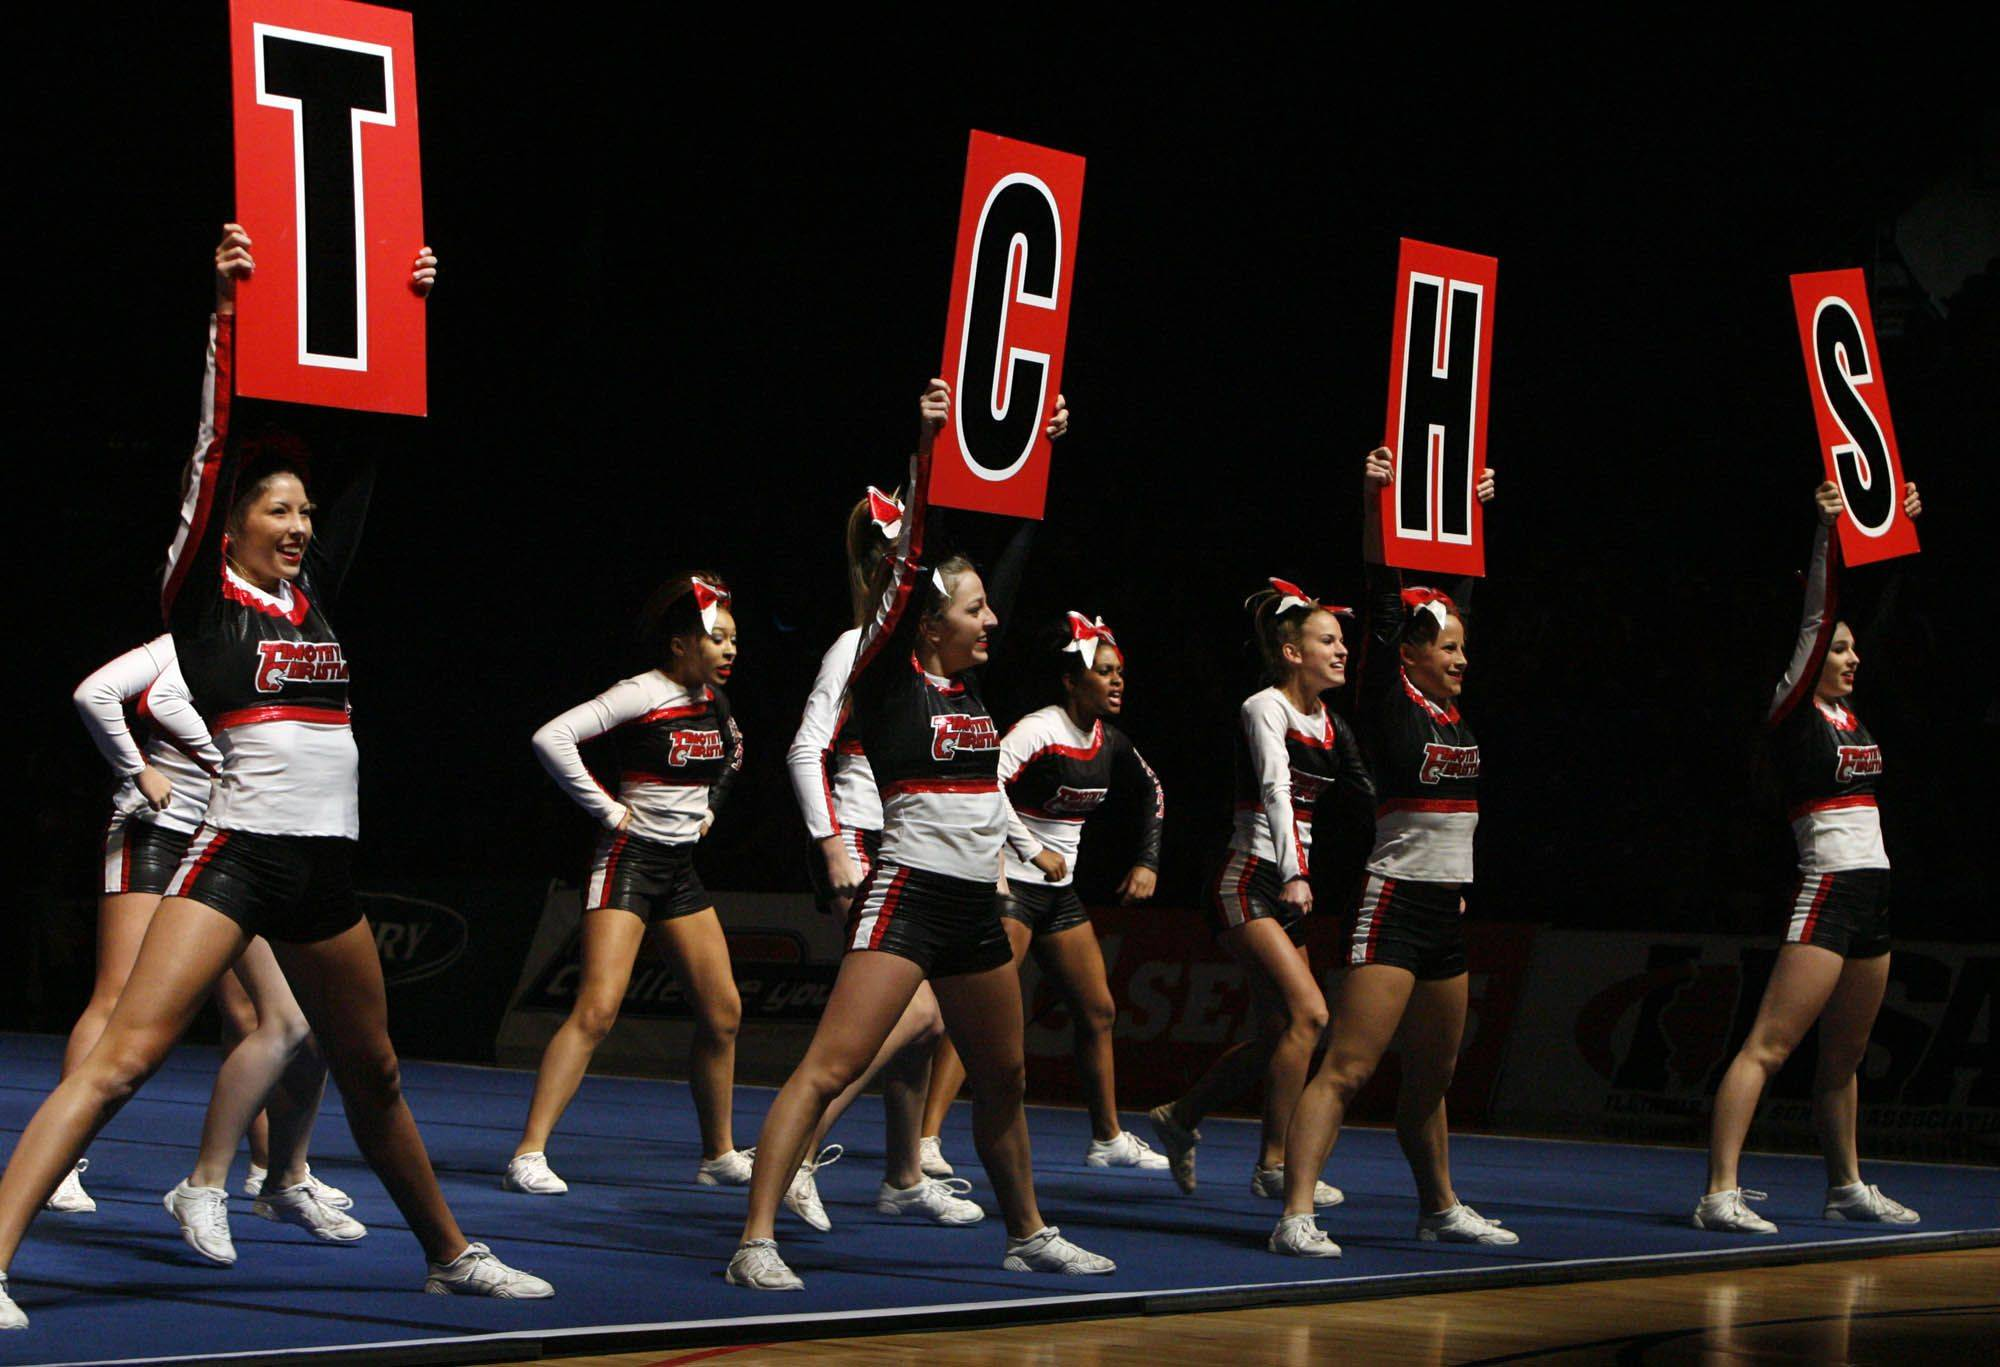 Timothy Christian competes in the small team category at IHSA cheerleading state finals at U.S. Cellular Coliseum in Bloomington on Saturday.